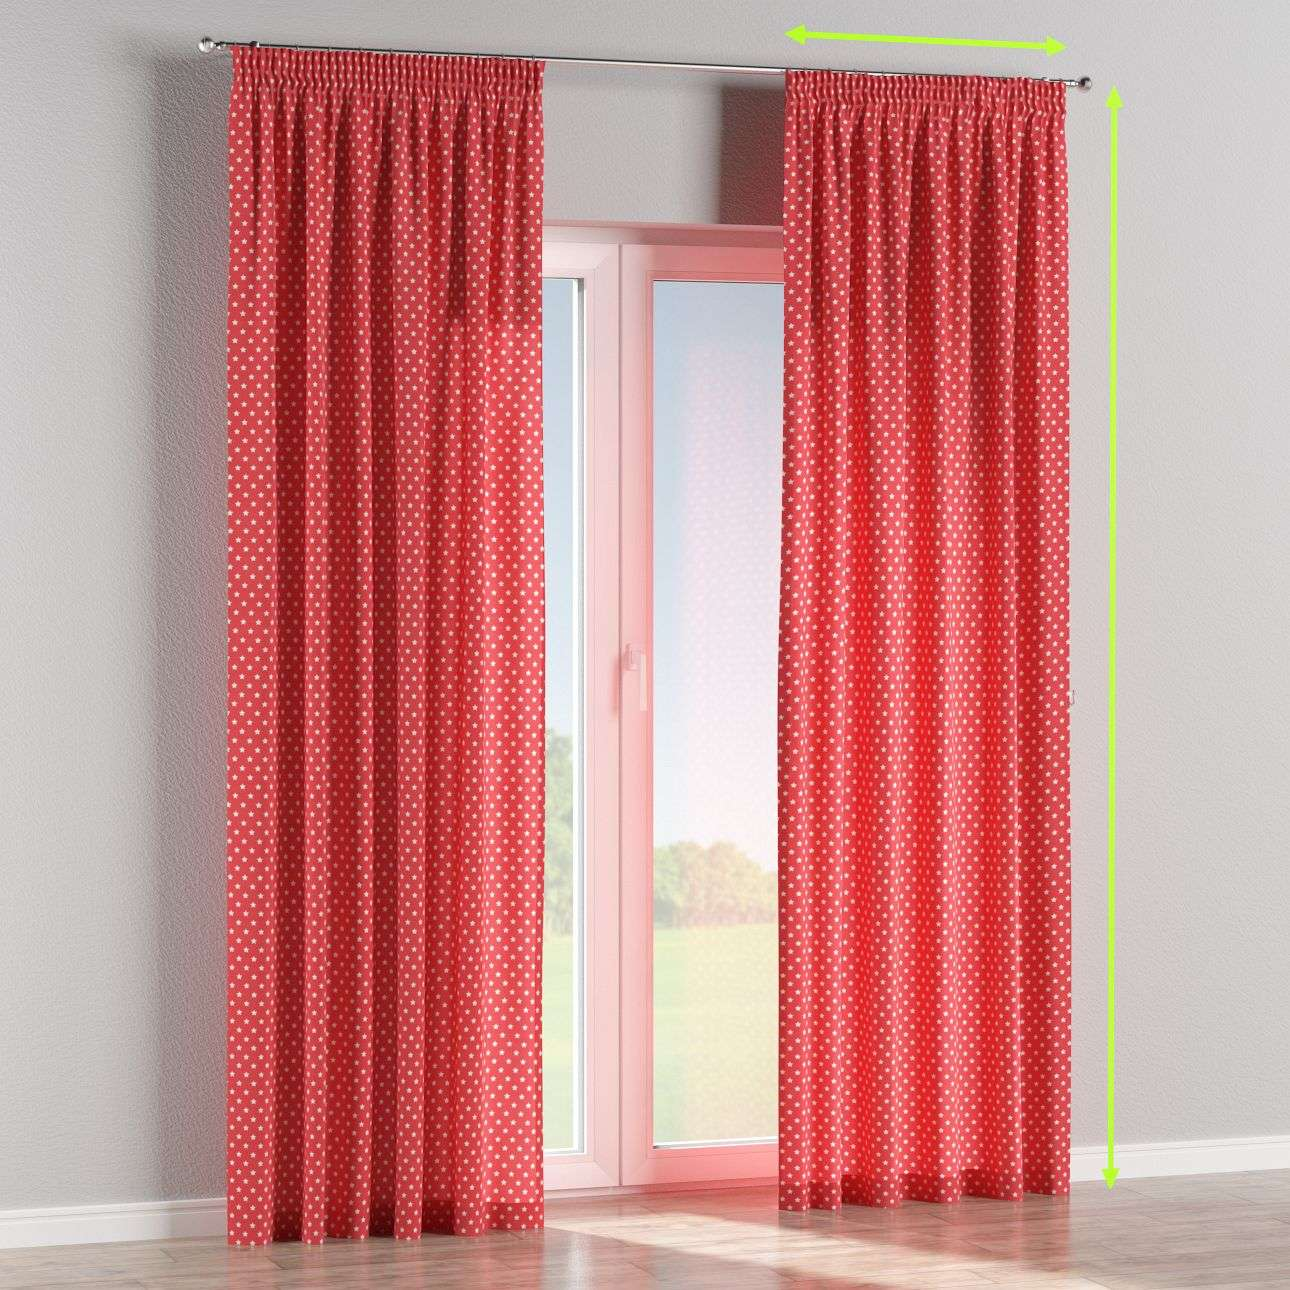 Pencil pleat curtains in collection Ashley, fabric: 137-69